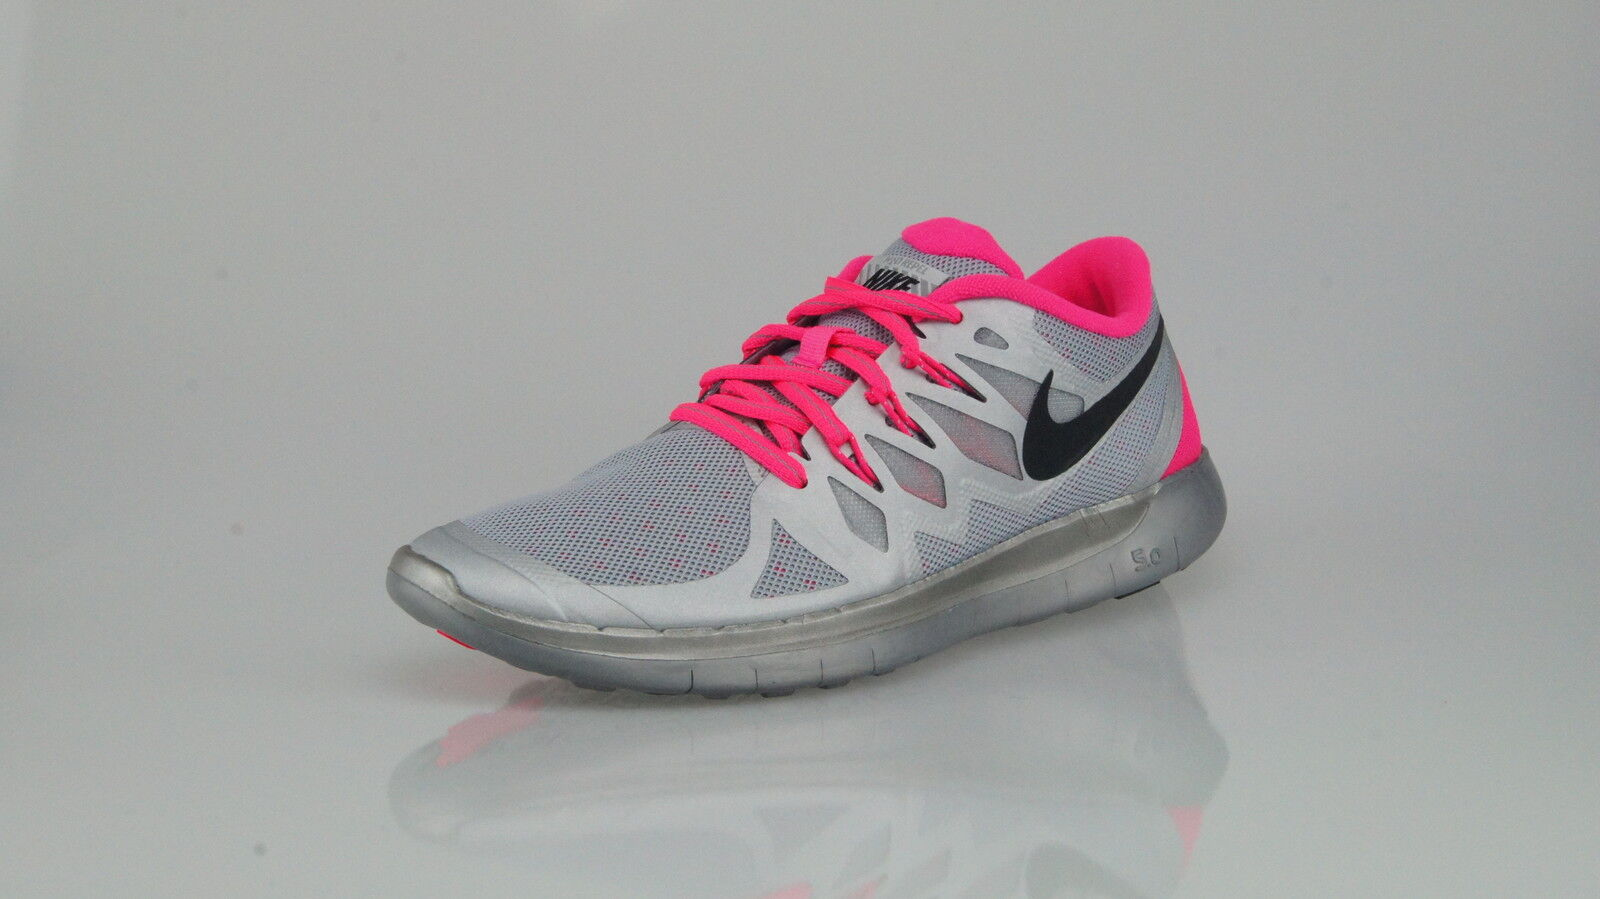 Nike air free 5.0 flash flash flash Größe 36,5 (6US) cc190f